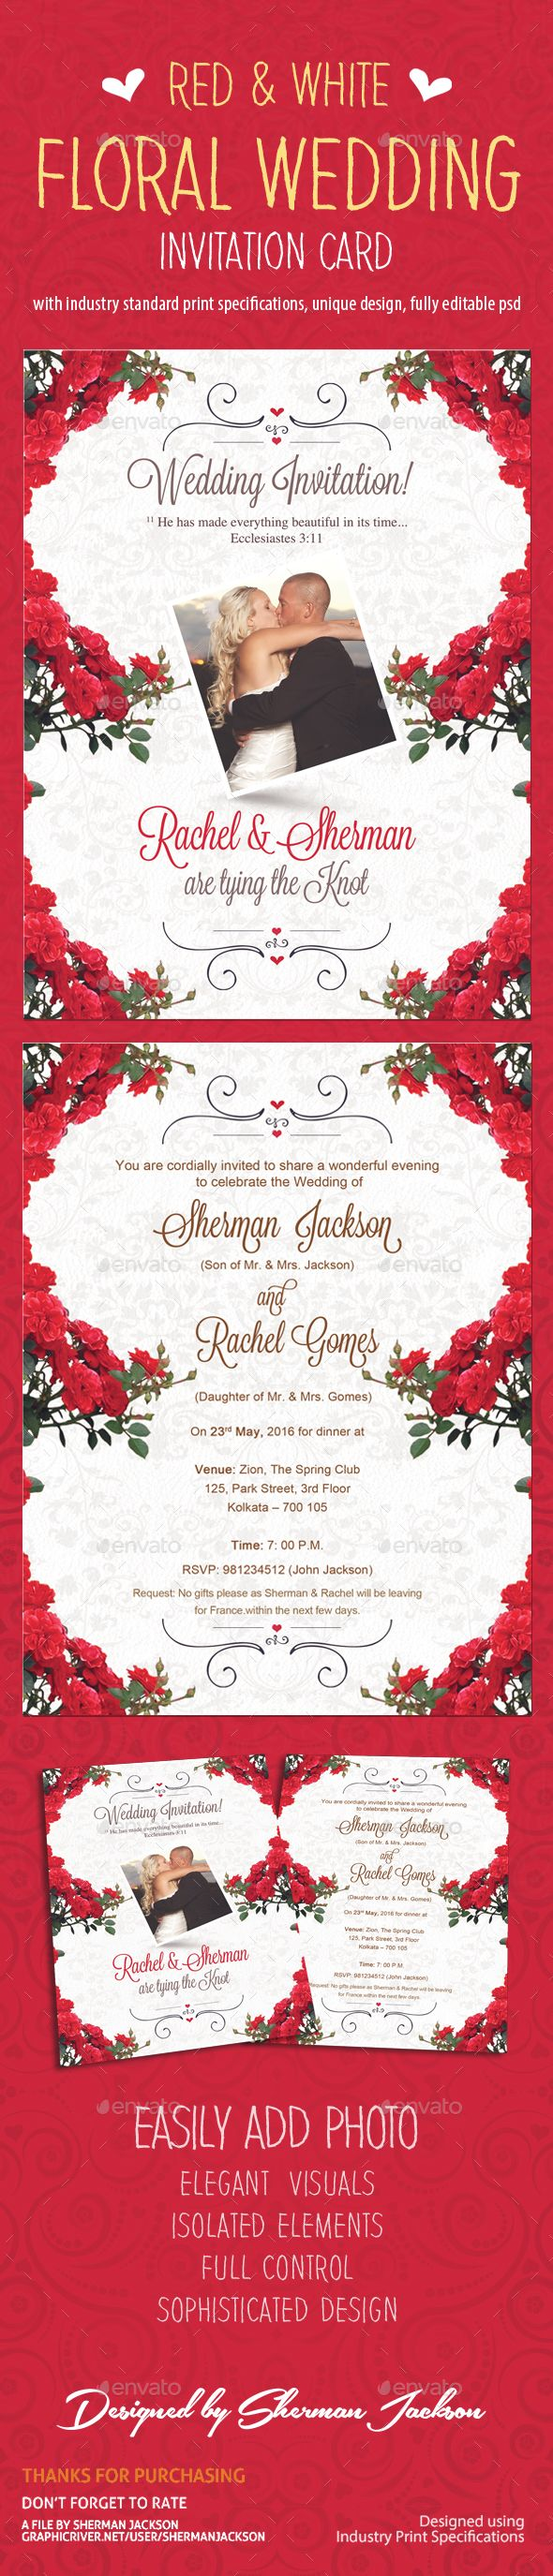 Red & White Floral Wedding Invitation | Floral wedding, Graphics and ...